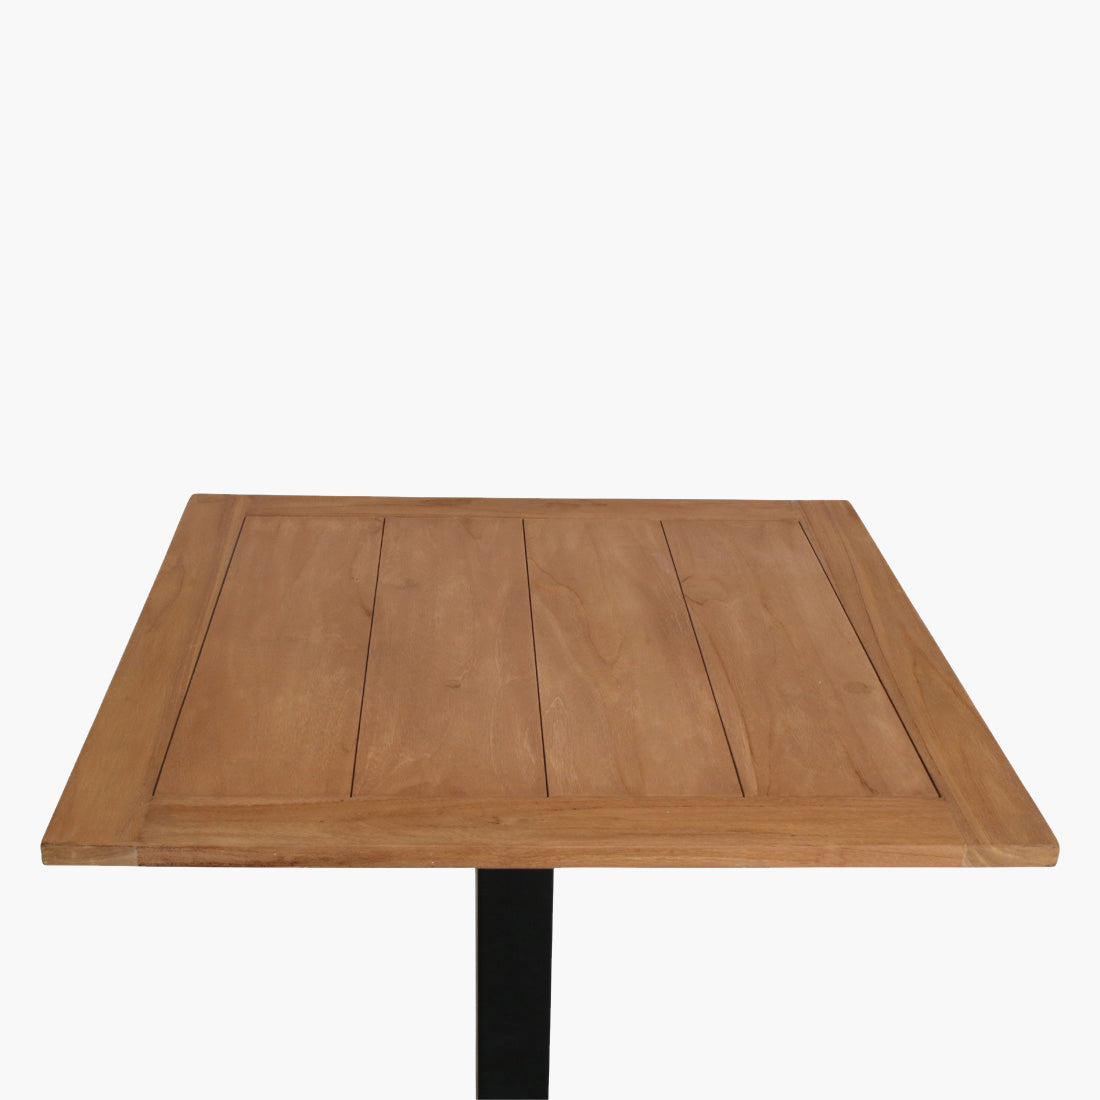 Teak outdoor table top 70x70